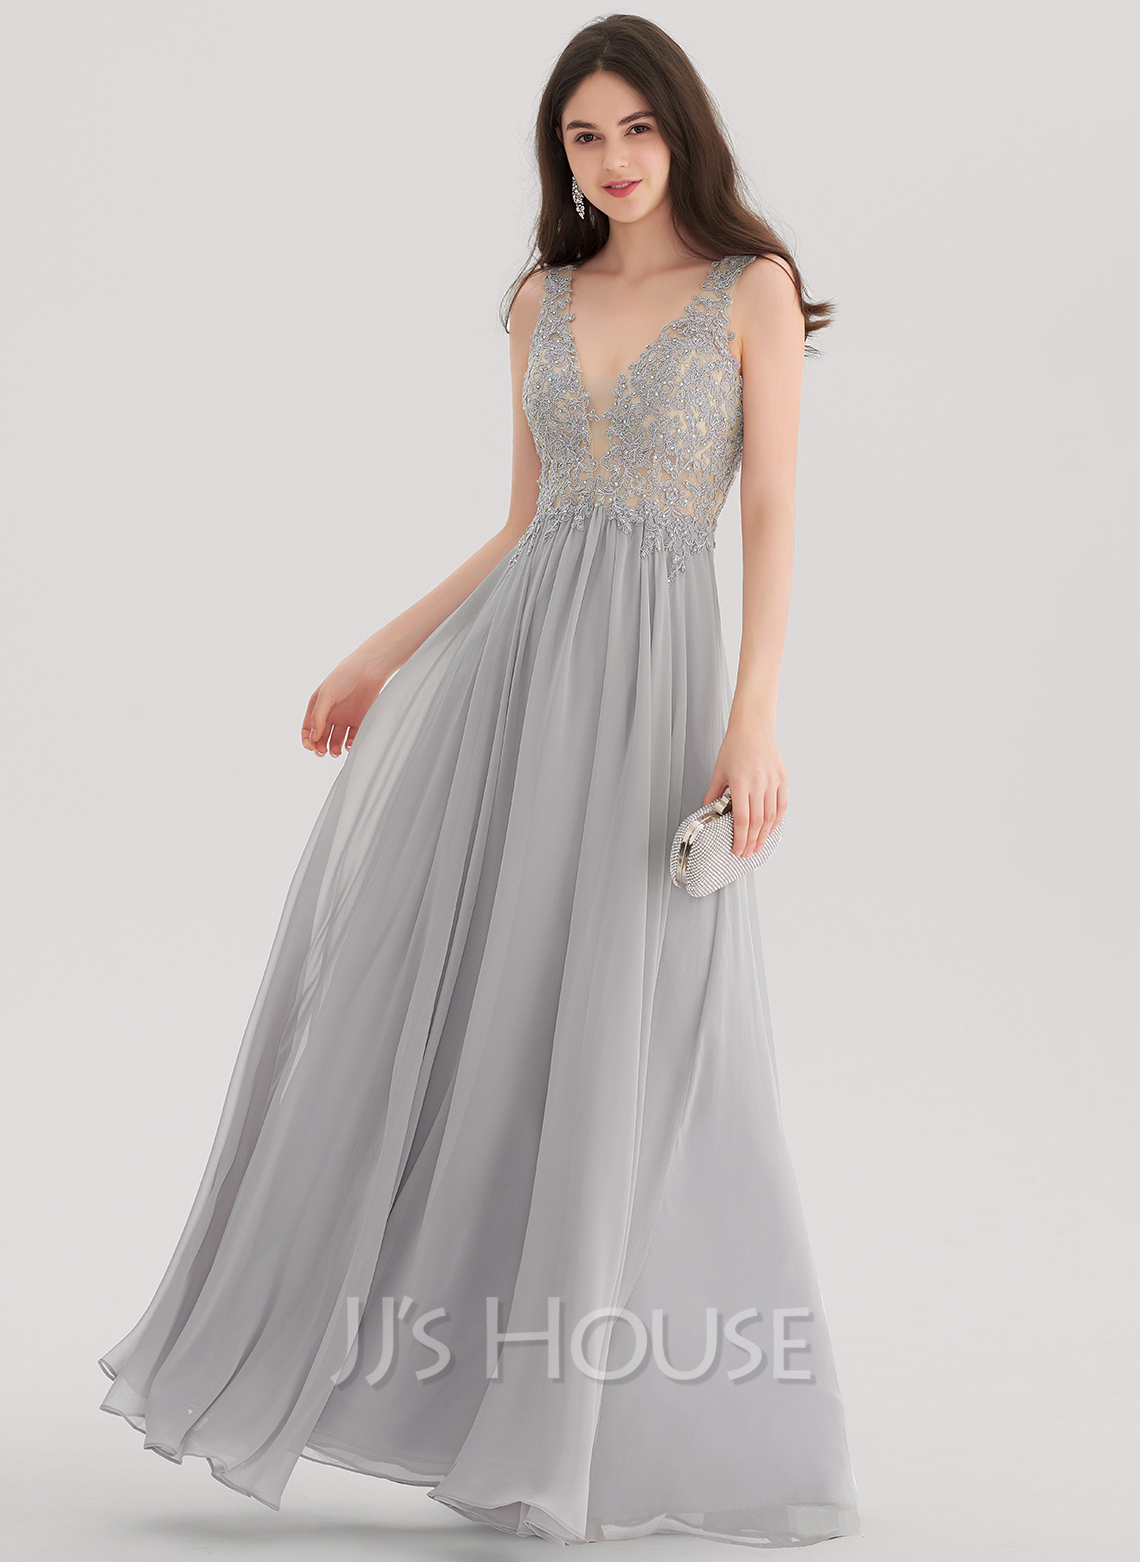 Cheap Prom Dresses In Louisville Ky | JJ\'sHouse